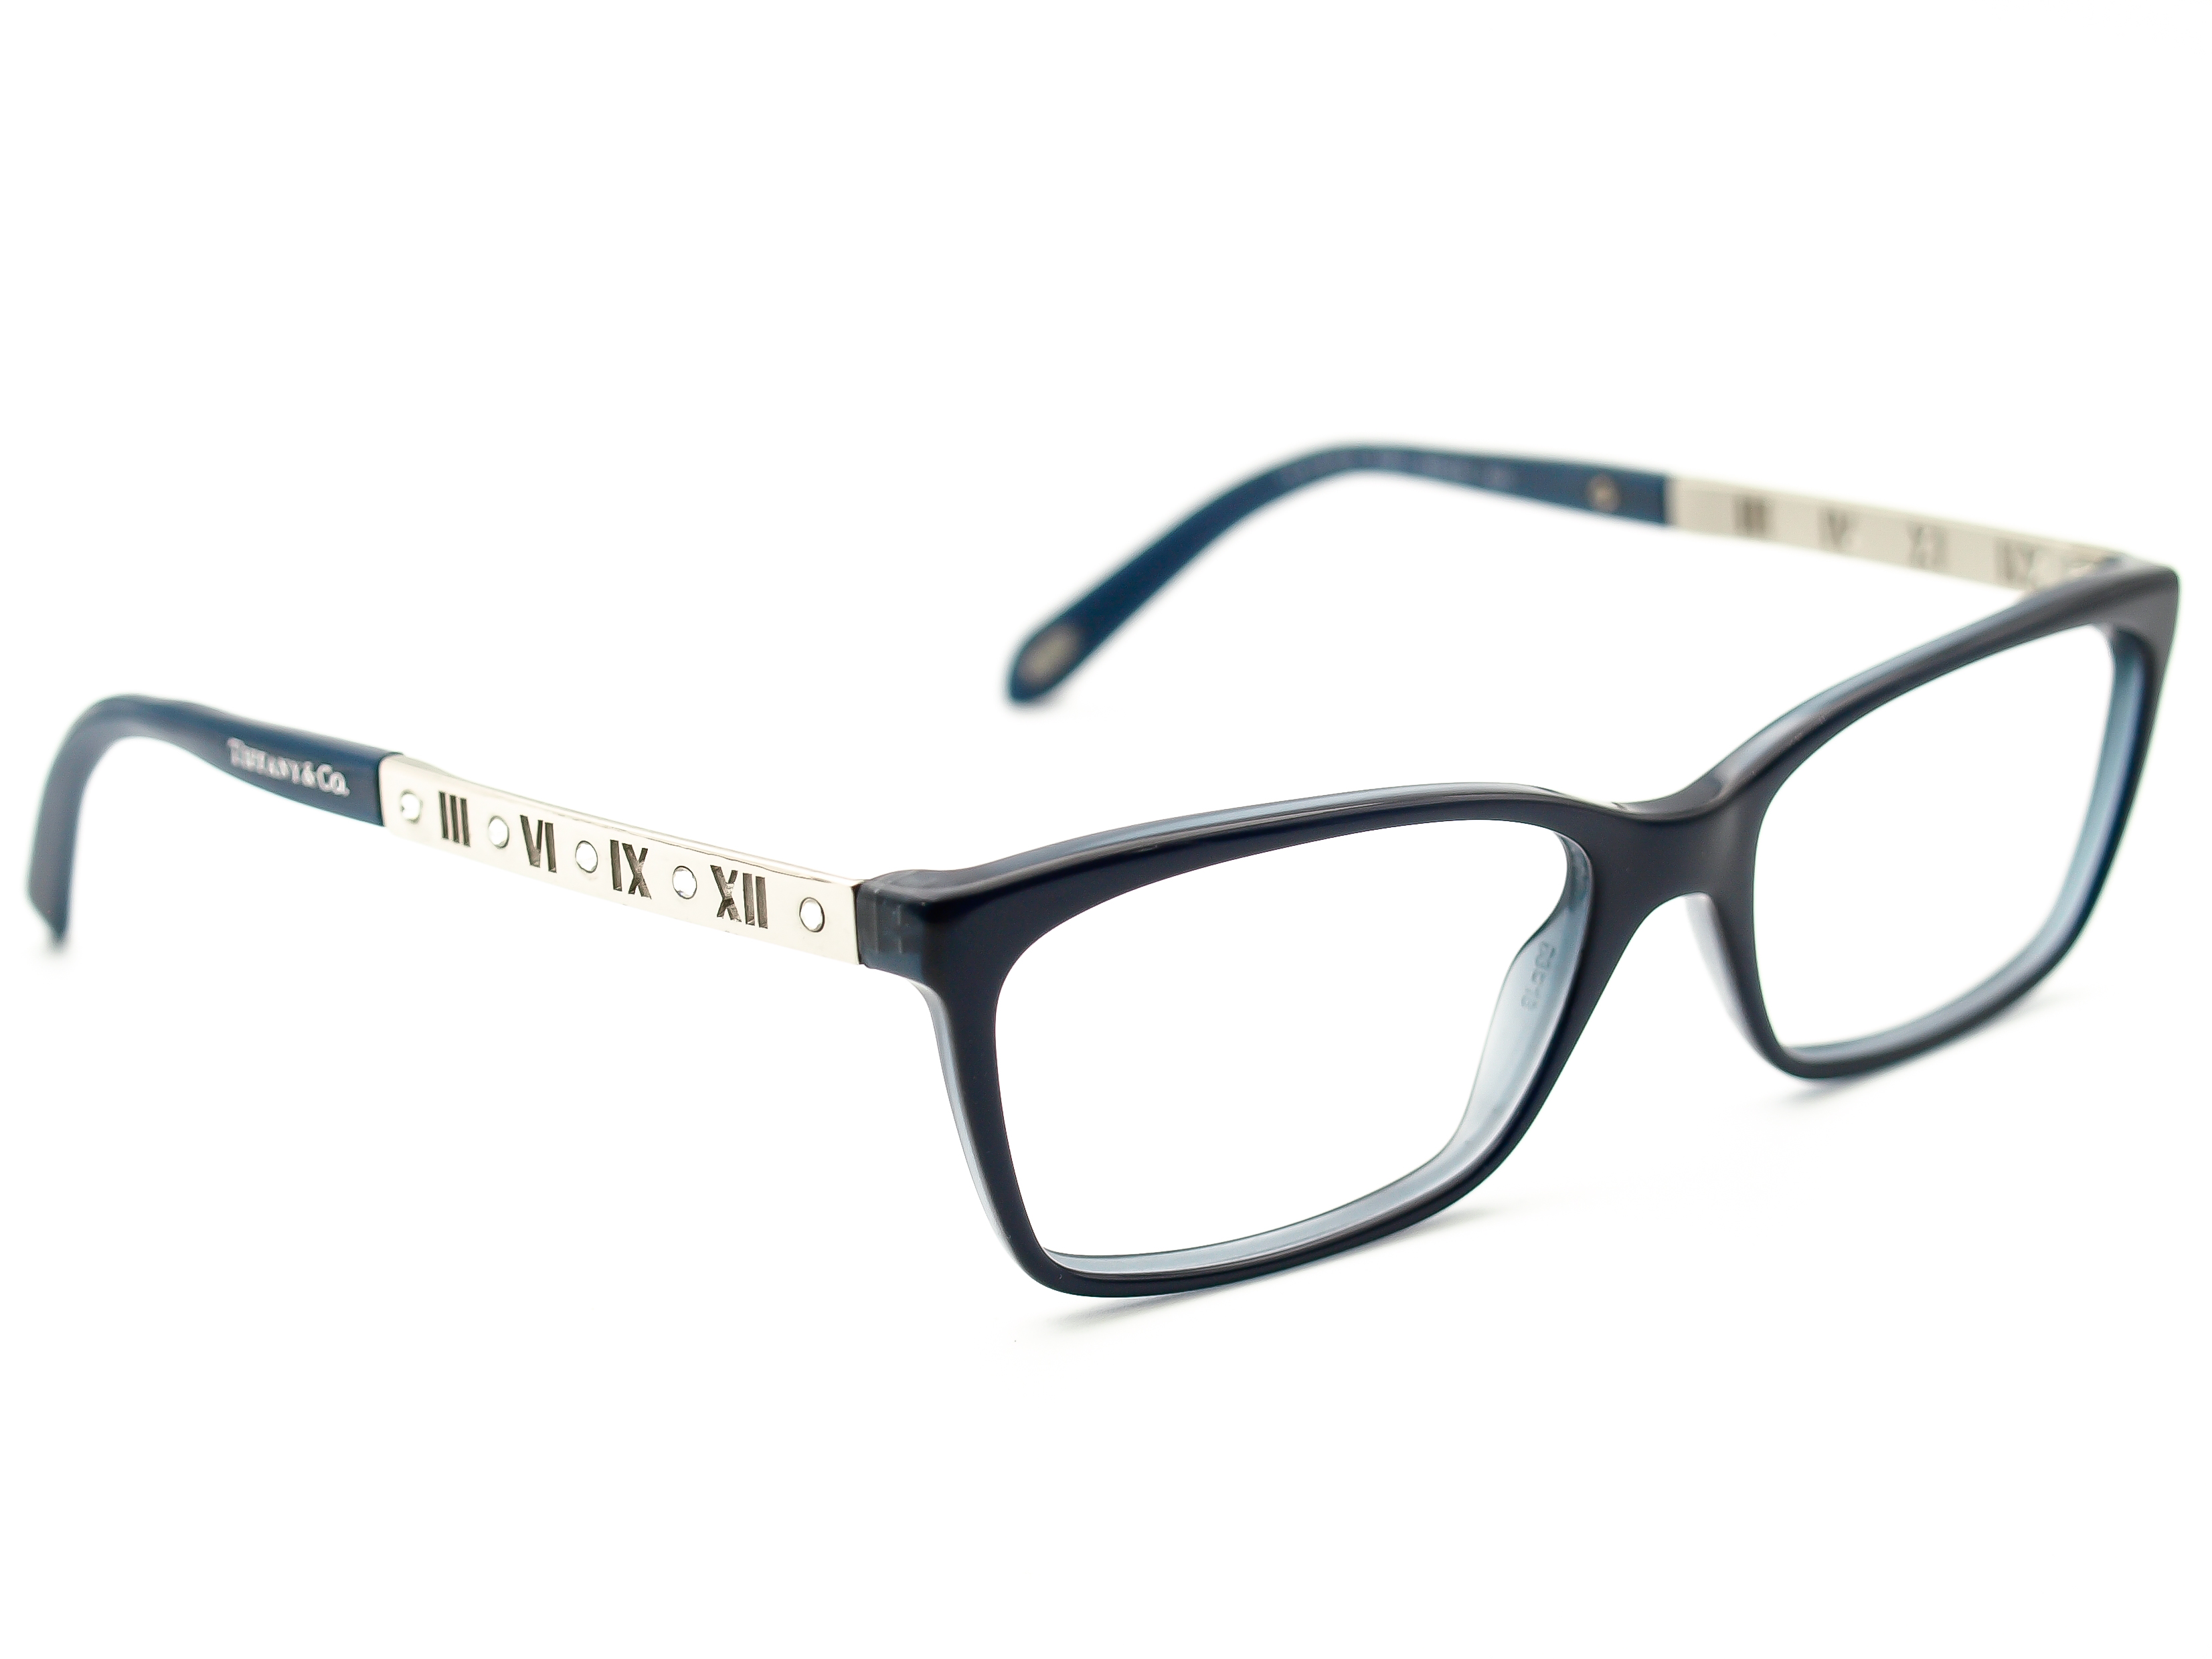 Tiffany & Co. TF 2103 8191  Eyeglasses